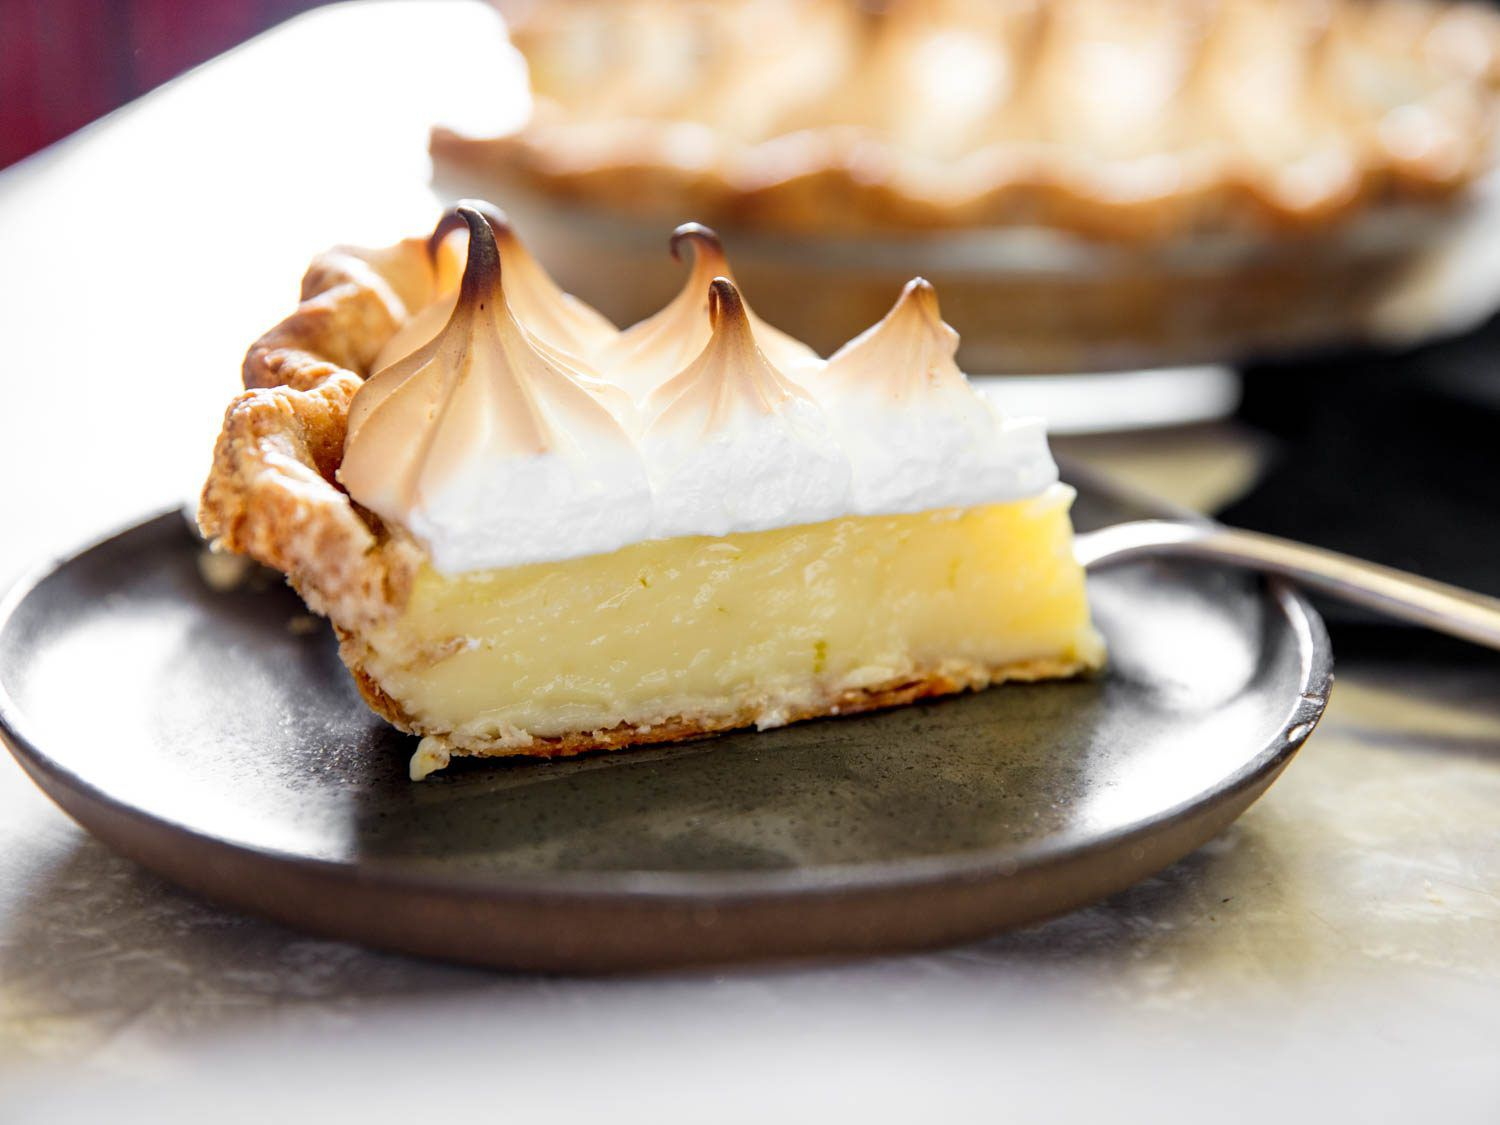 Slice of lime pie with meringue on a plate